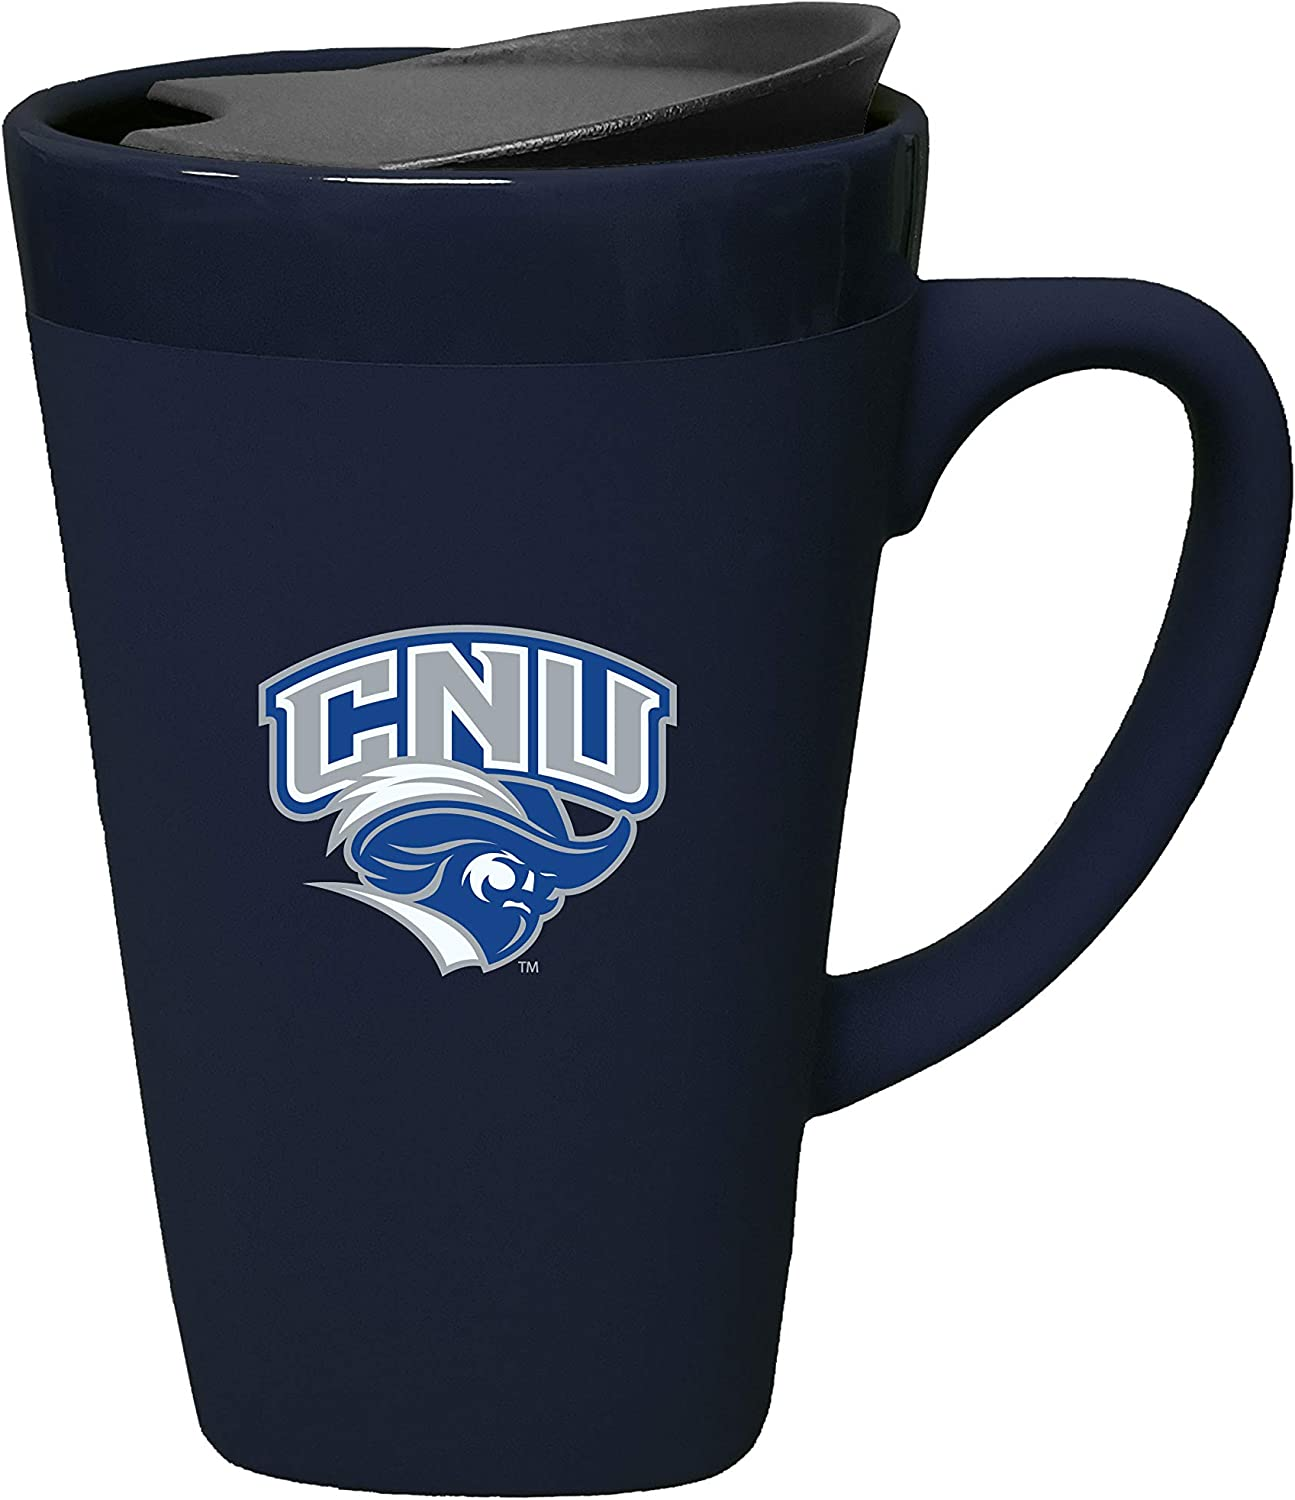 2021new shipping free shipping Christopher Newport Ceramic Outstanding Mug with Blue Lid Swivel Design-1 -